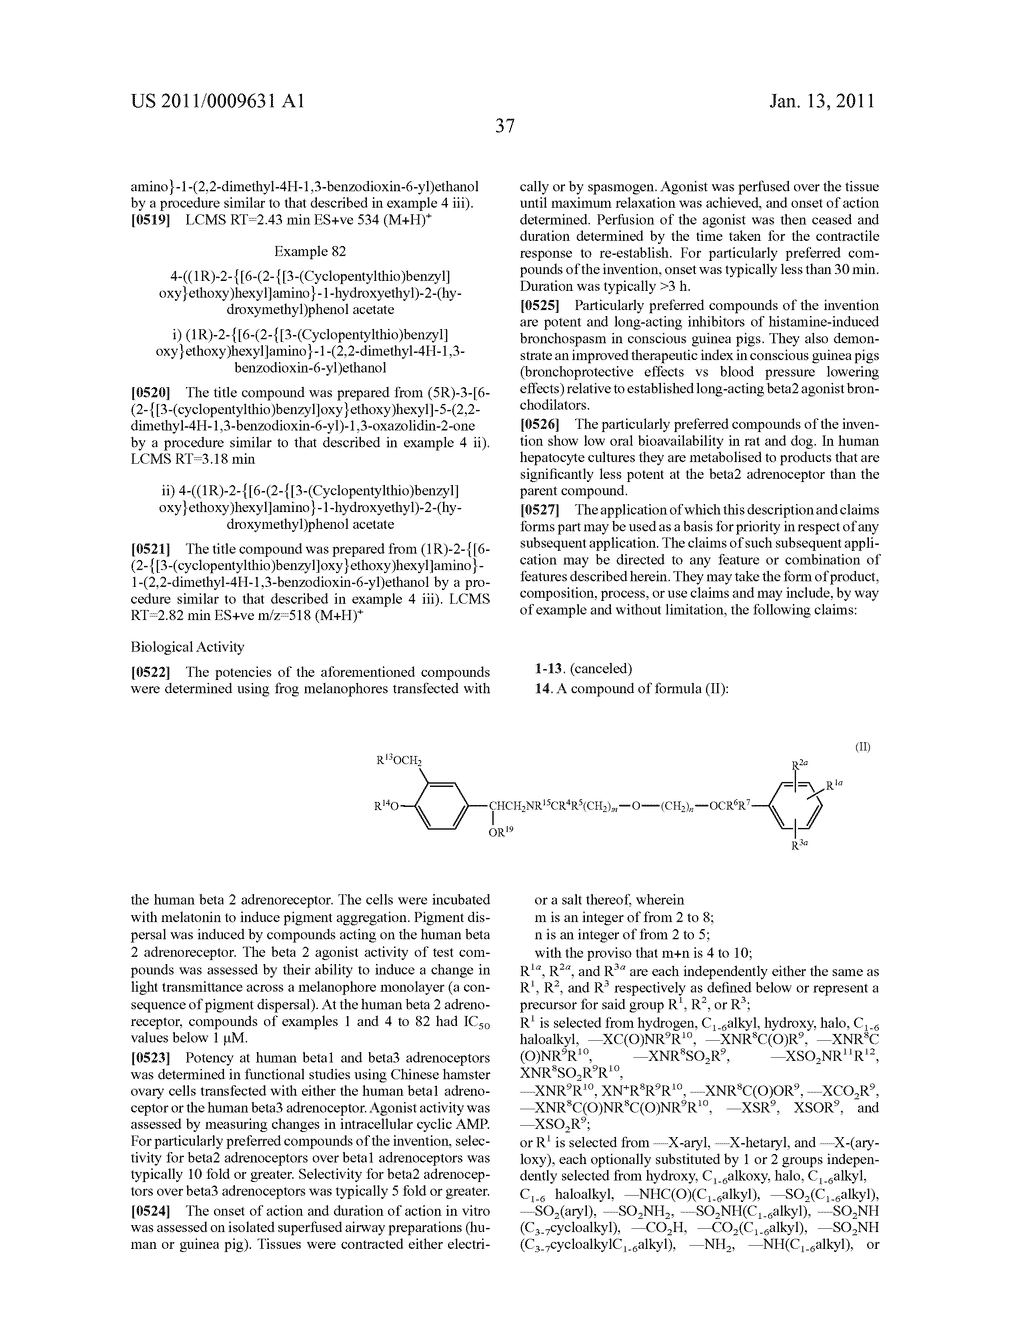 Phenethanolamine Derivatives for Treatment of Respiratory Diseases - diagram, schematic, and image 40